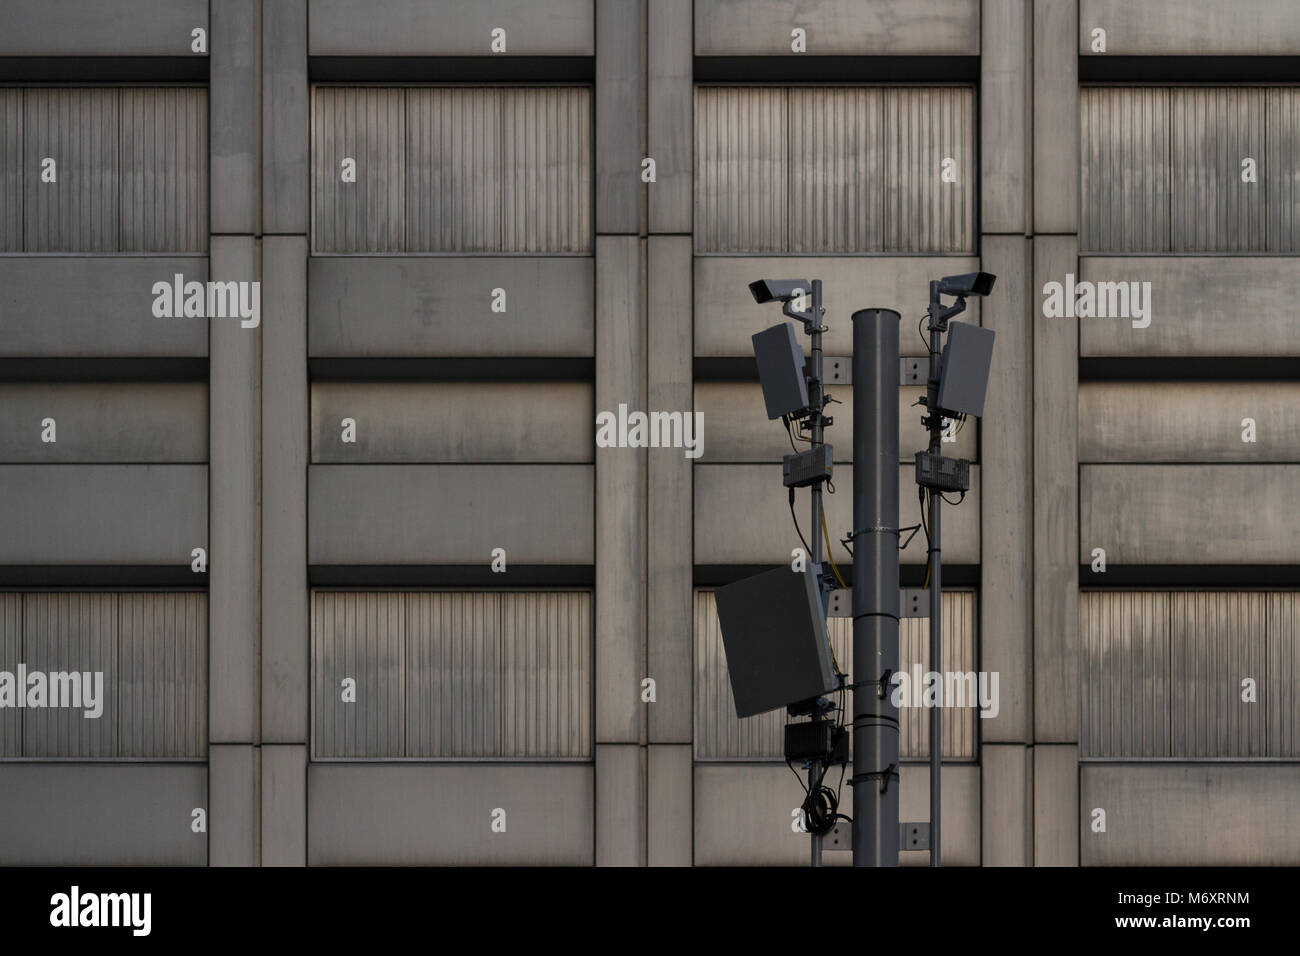 CCTV cameras and transmitters on a pole in Shinjuku, Tokyo, Japan Friday February 23rd 2018 - Stock Image